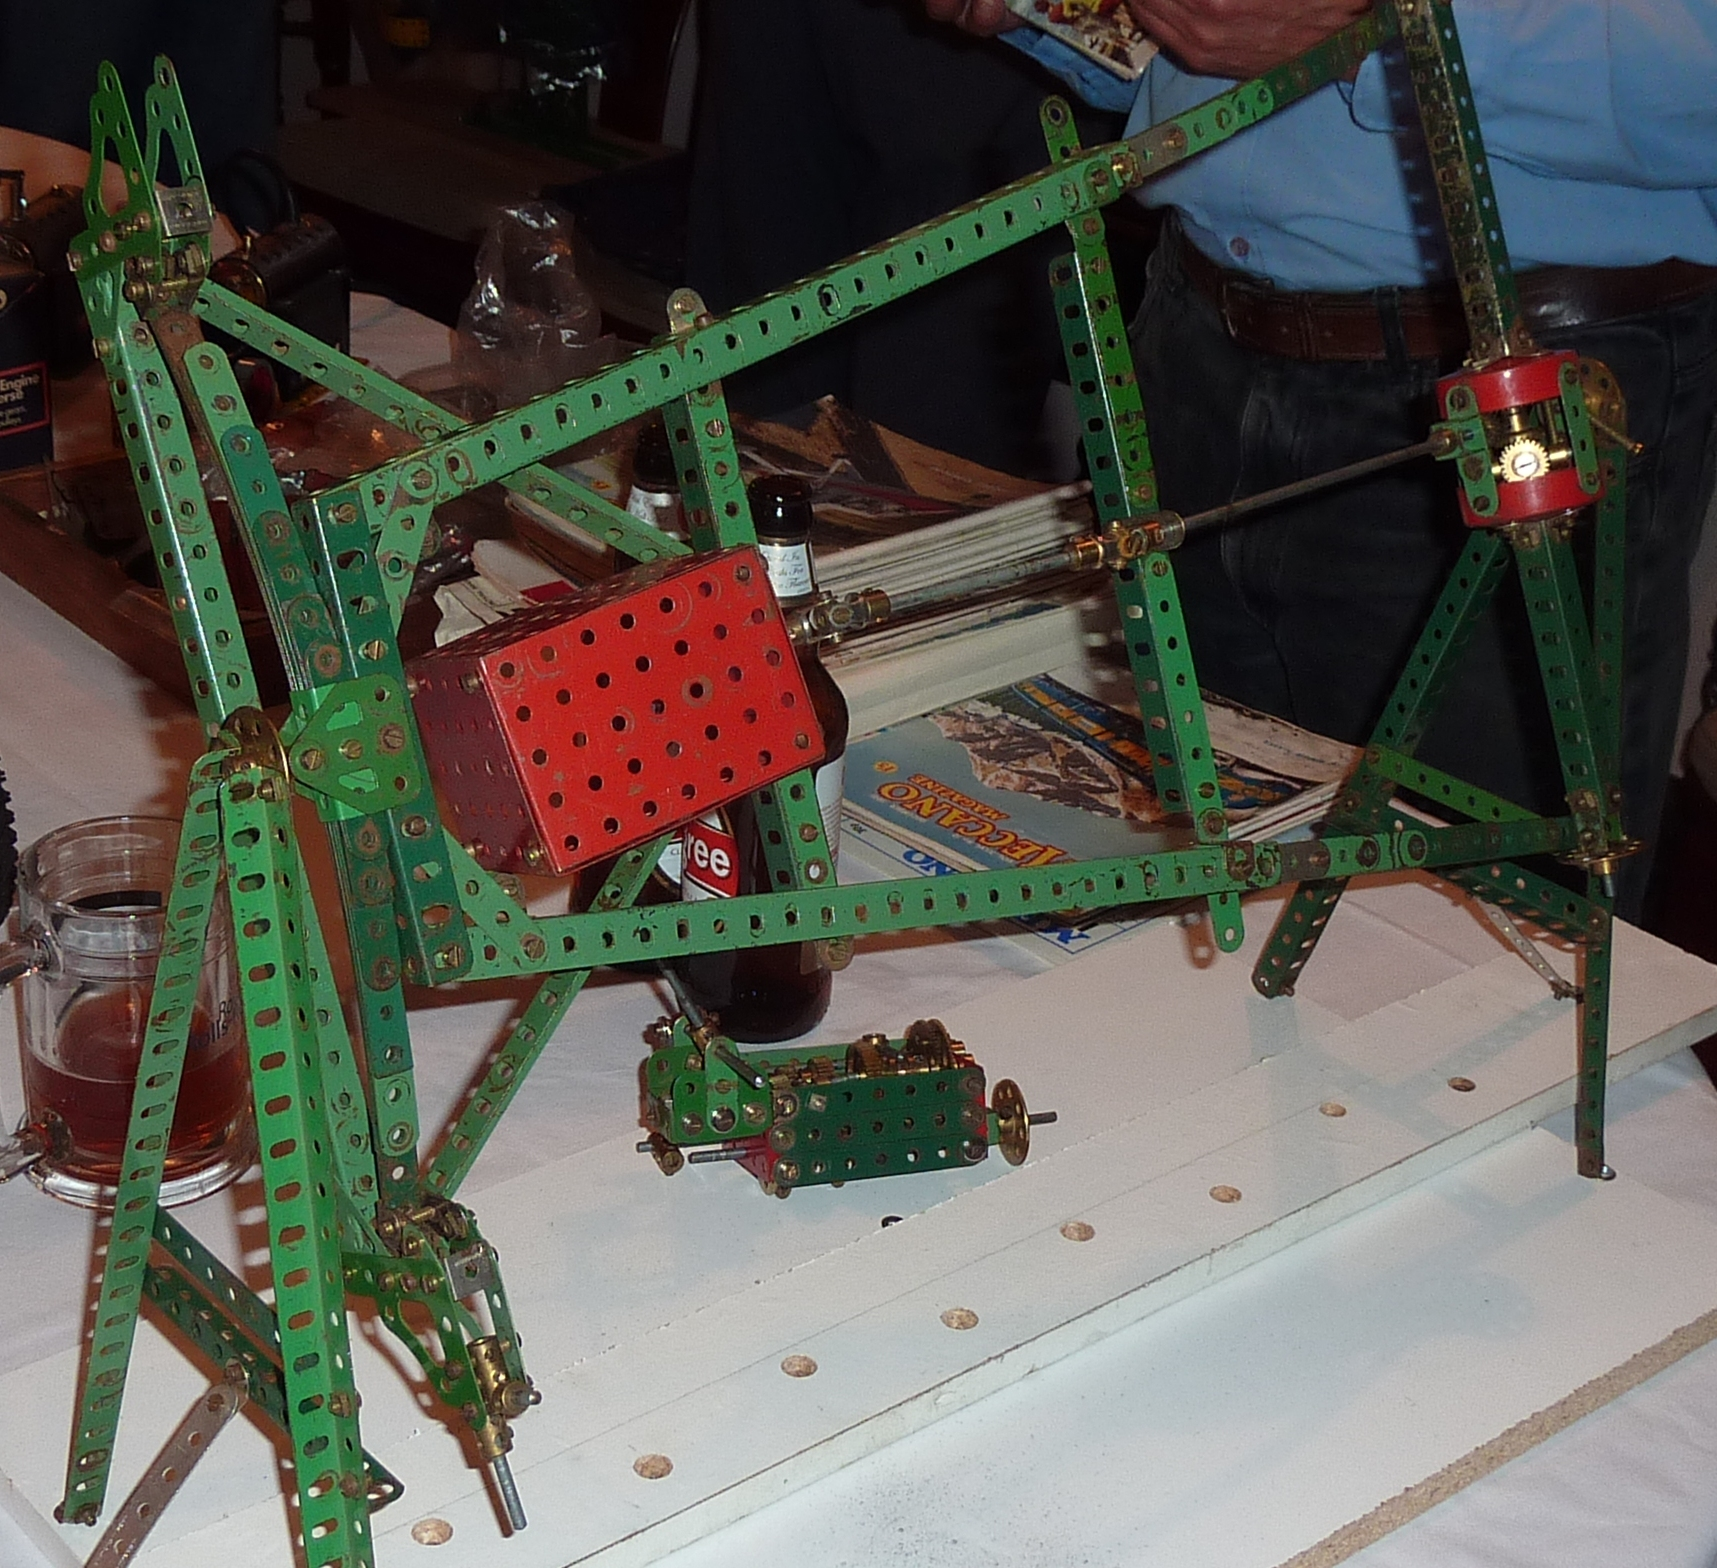 2011 October Model in progress of Austin 7 chassis on display stand by Chris Bates